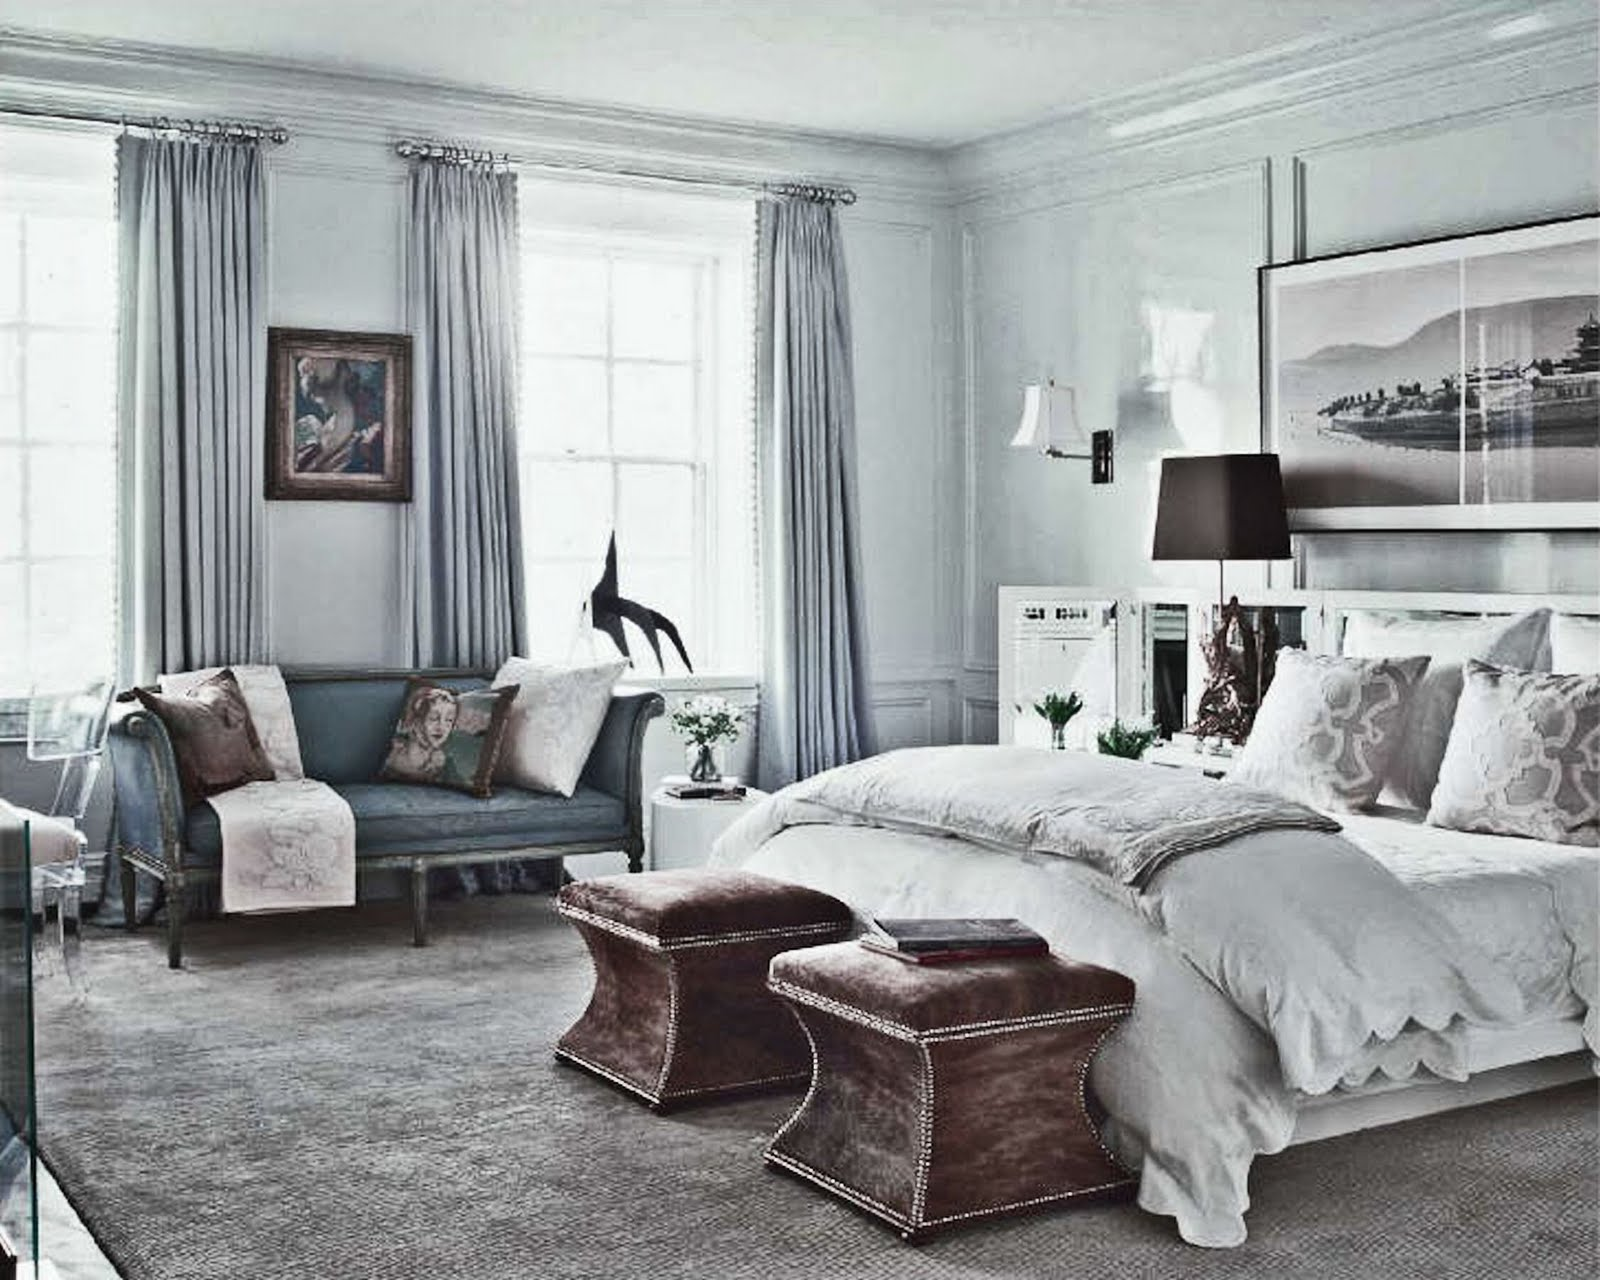 Simple everyday glamour picture perfect bedroom for Perfect bedroom ideas